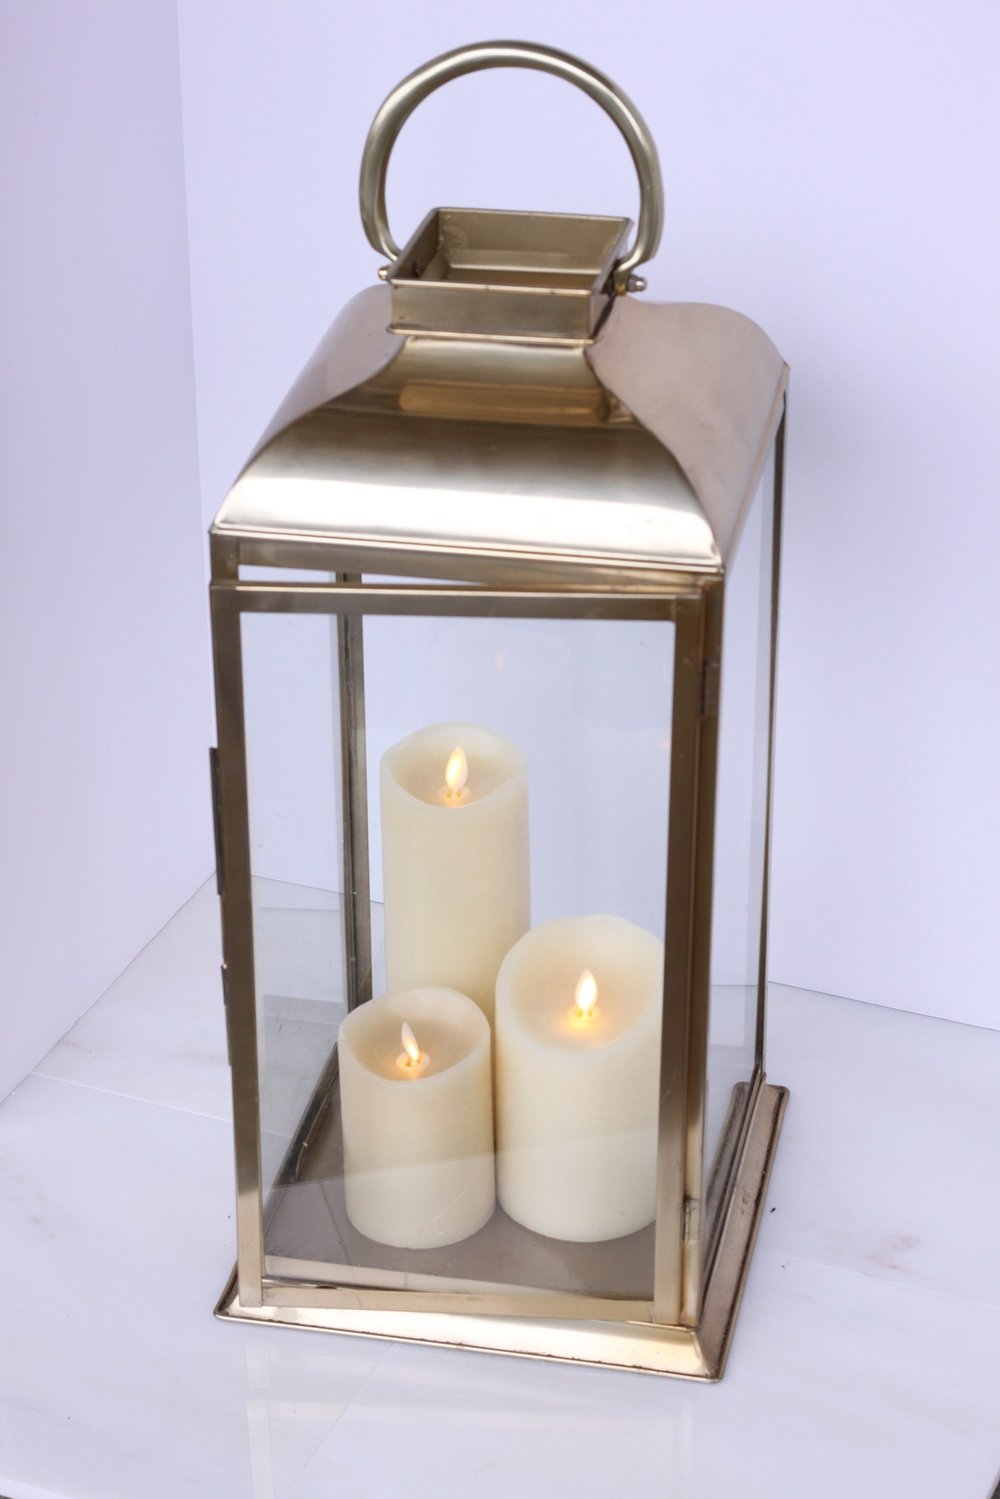 Copy of Brass Lantern with candles $45/ea.